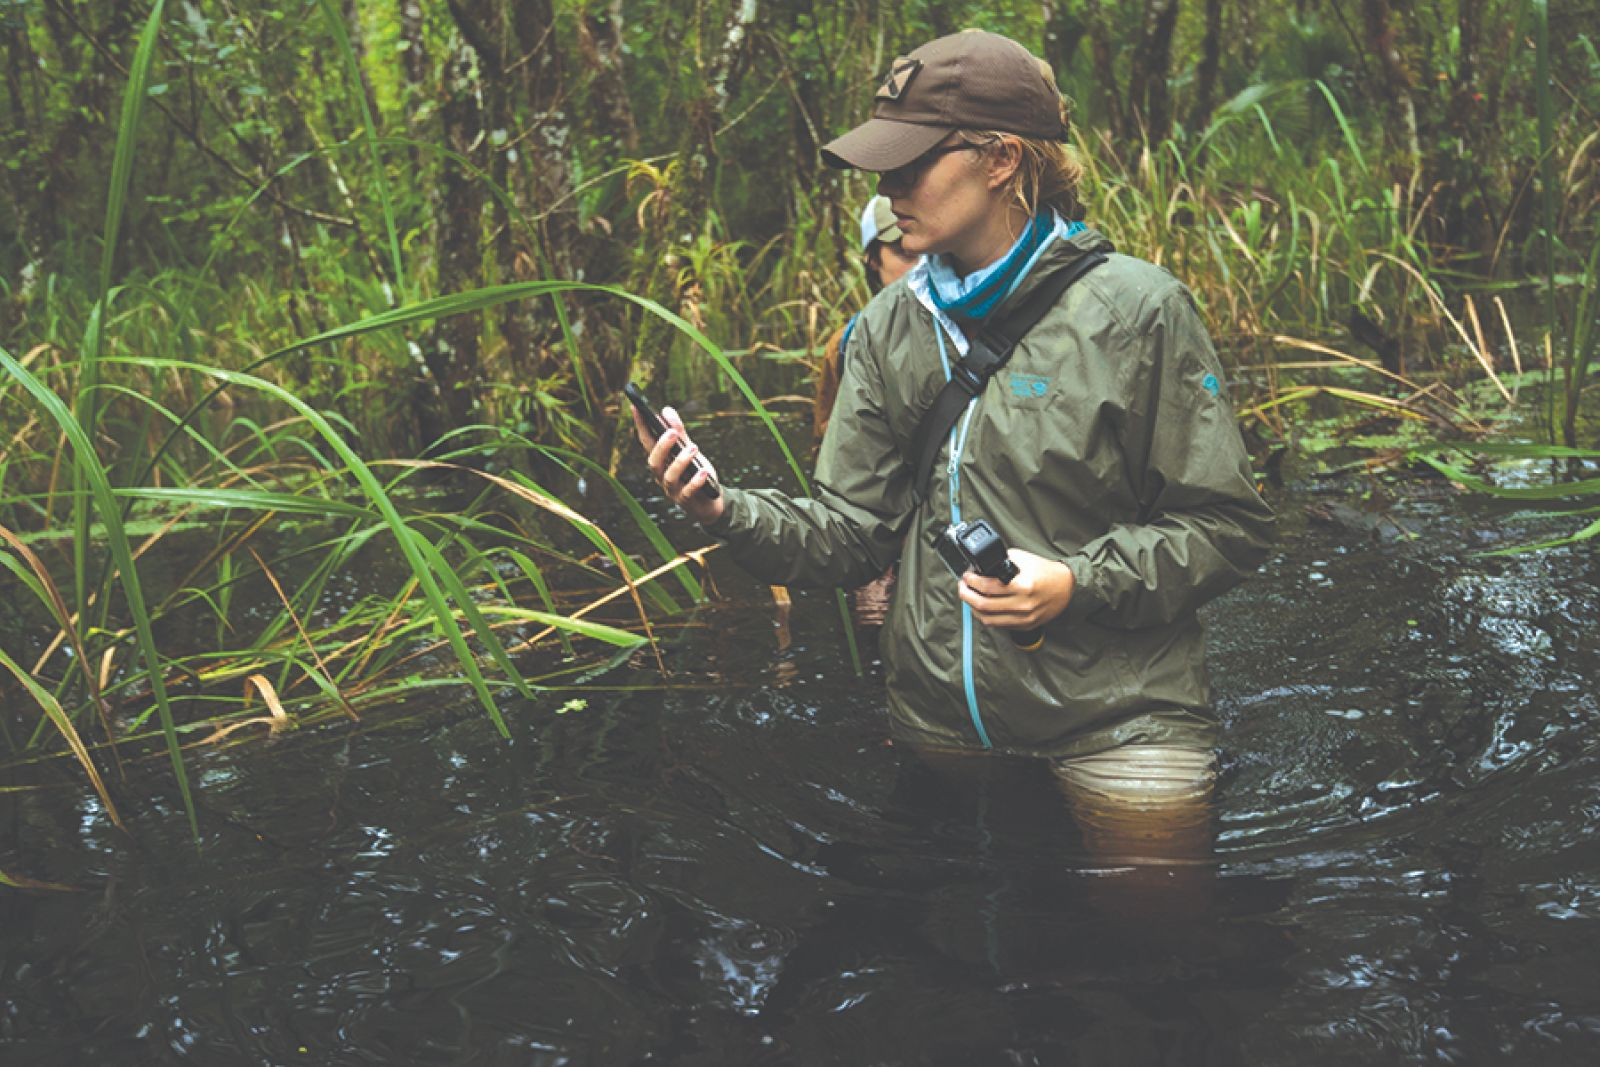 Tori Linder examines plants in the field.